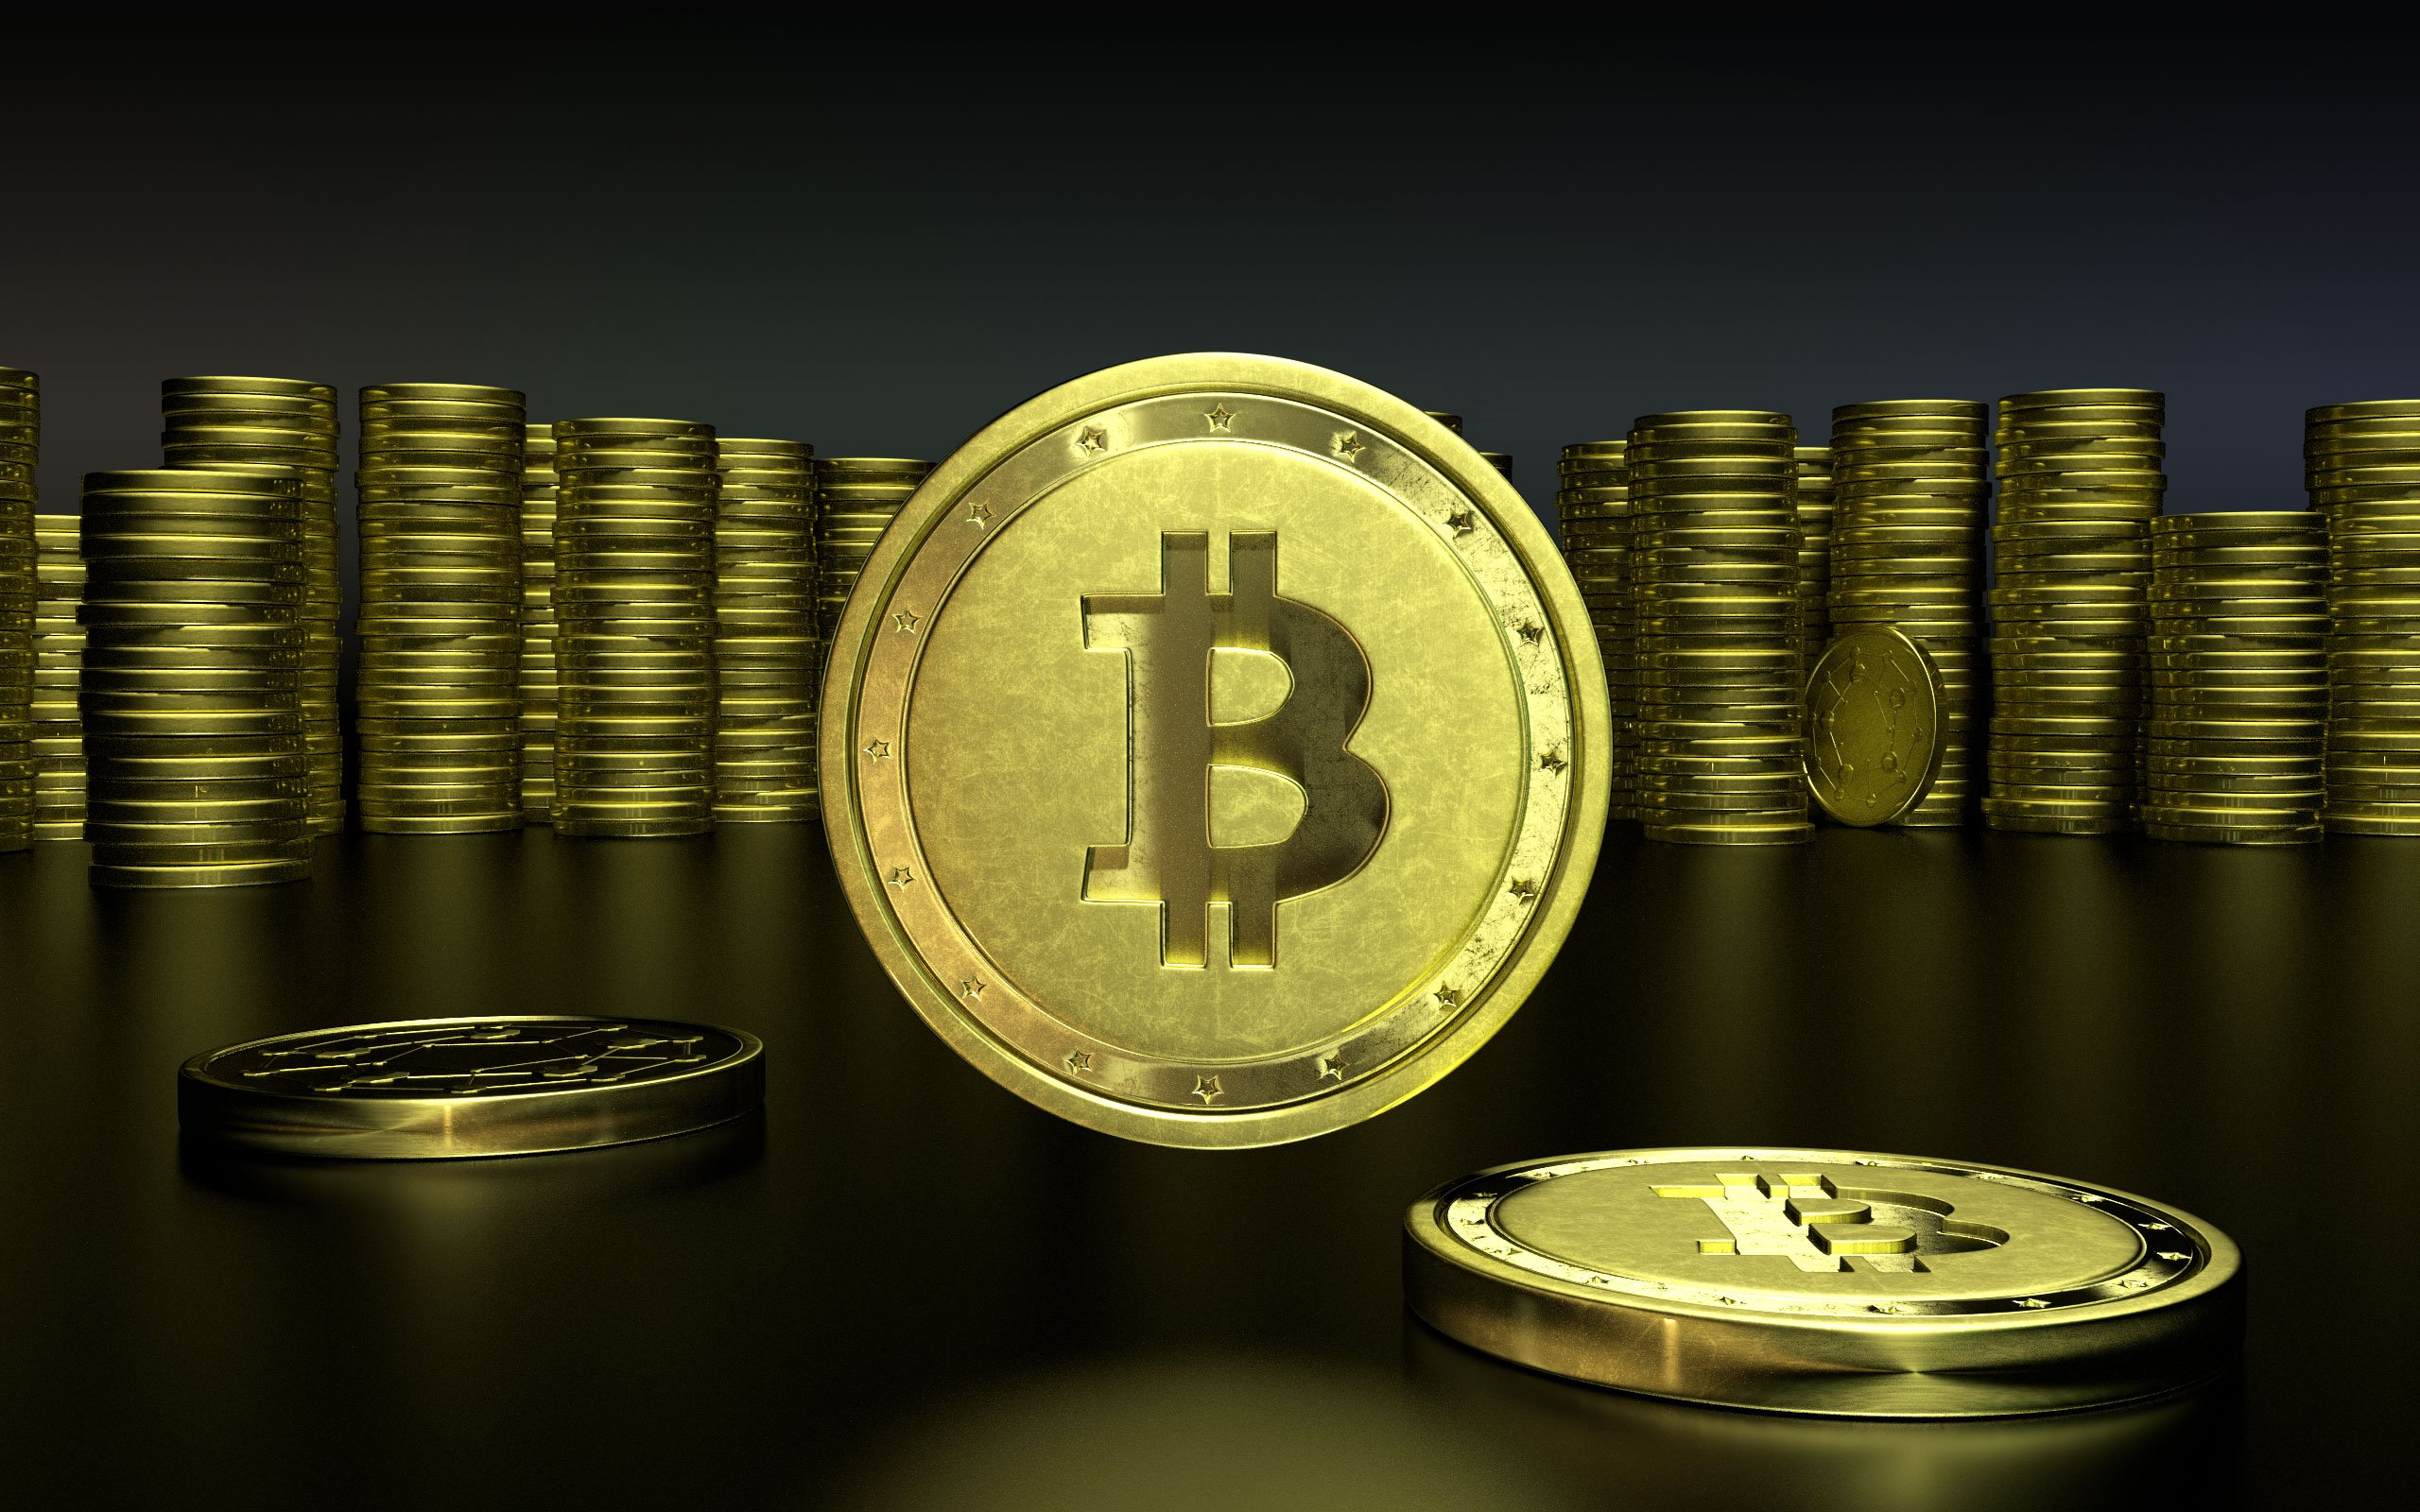 BITCOIN | CryptoTrend: Should we band or use CryptoCurrencies?